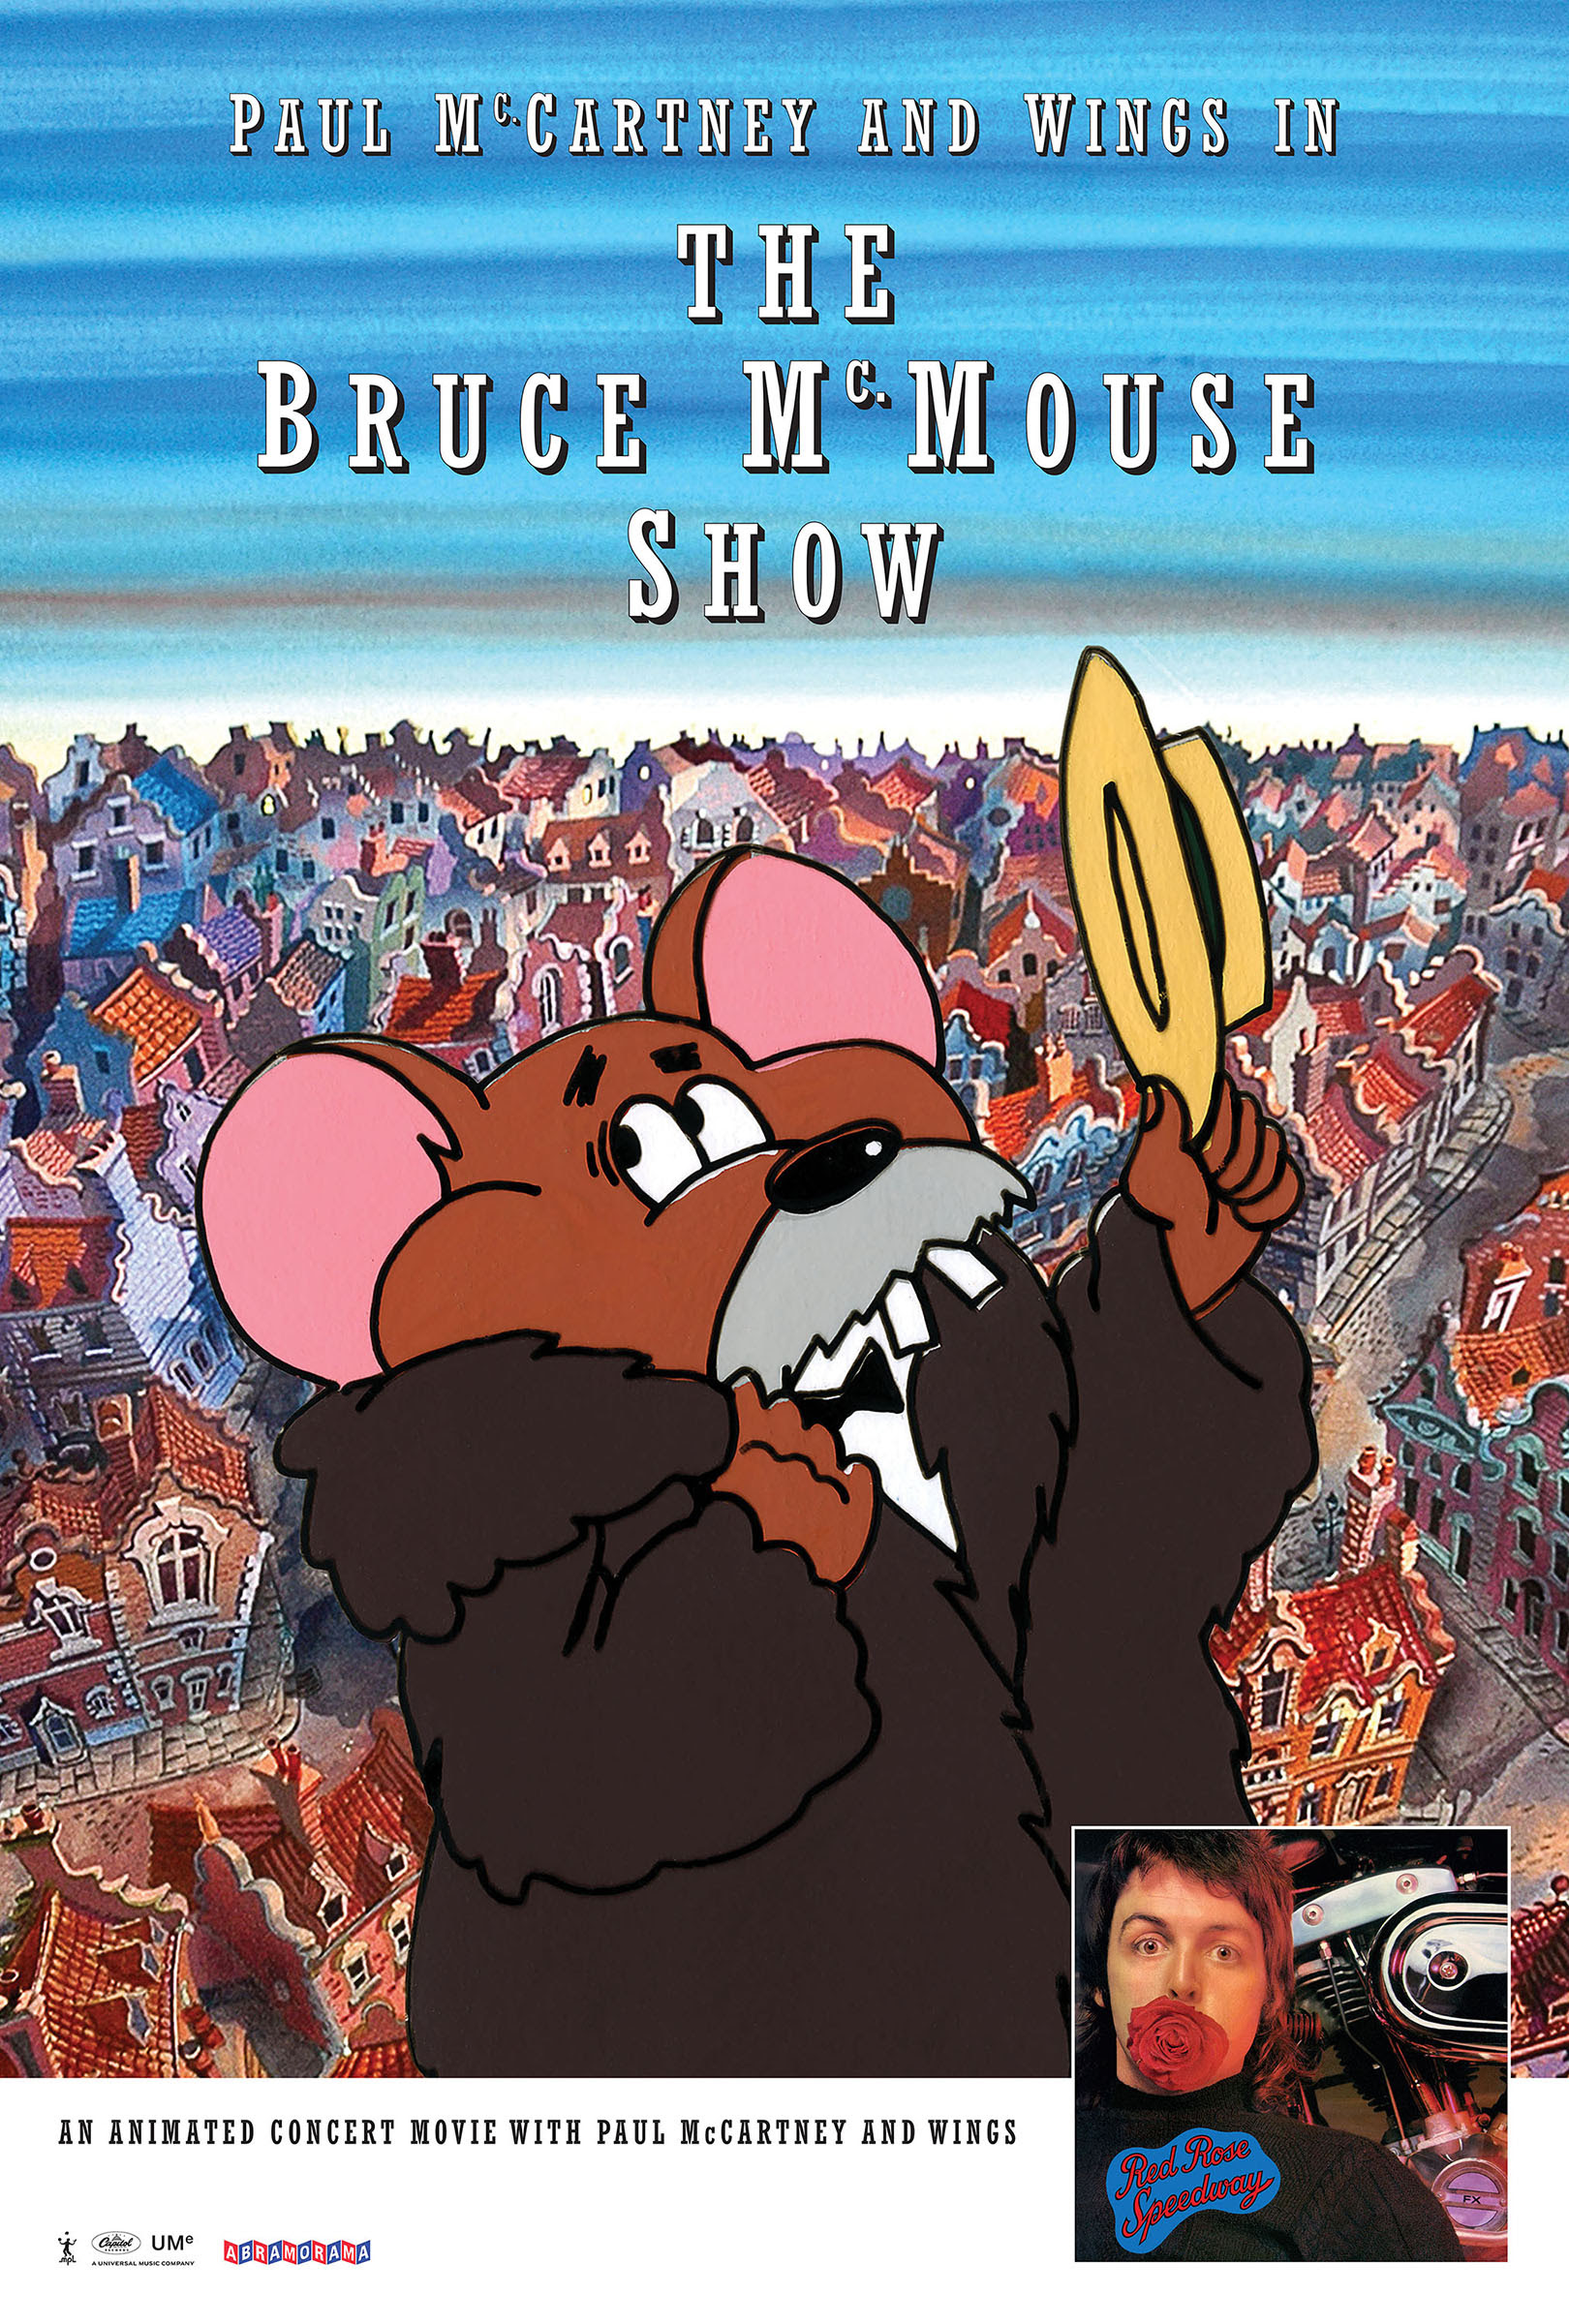 PAUL McCARTNEY'S: THE BRUCE McMOUSE SHOW PLAYING IN SELECT THEATERS